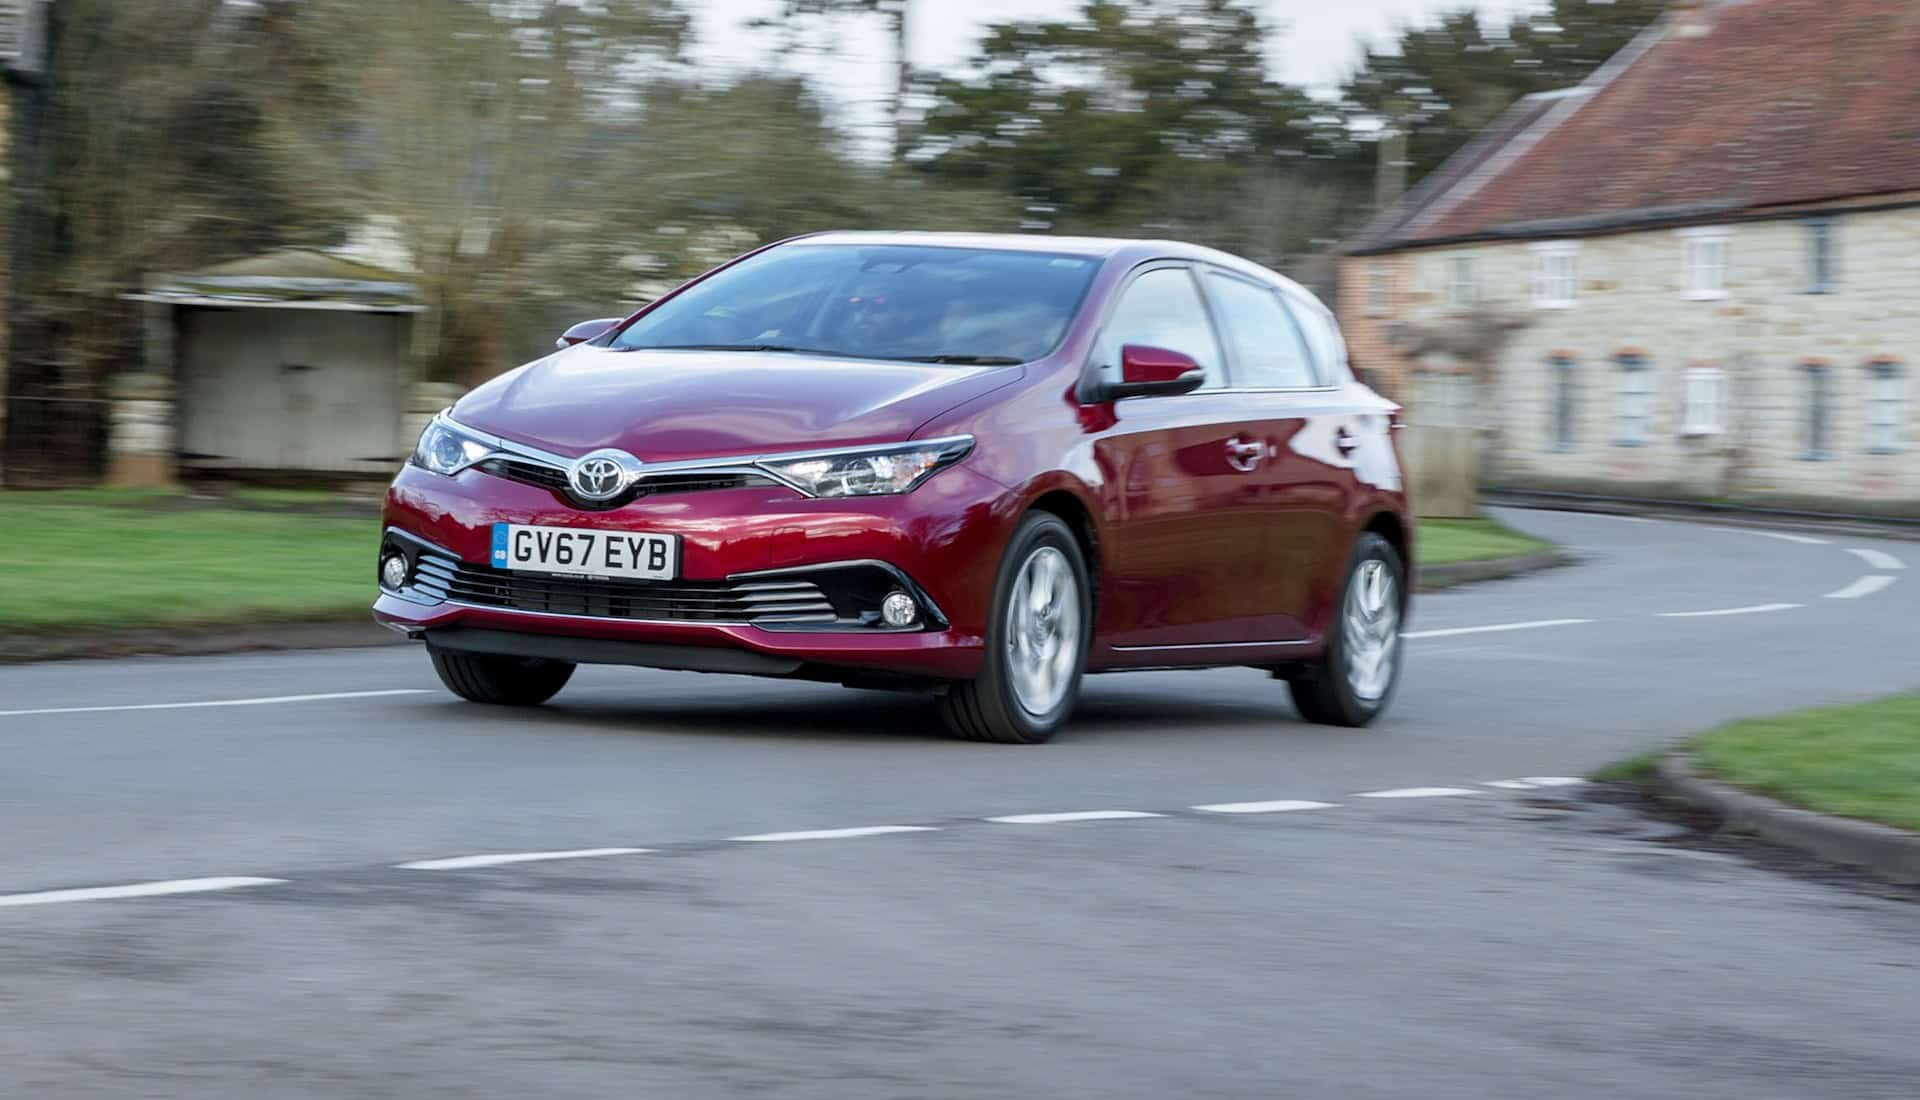 Toyota Auris 1 2-litre review 2018 | The Car Expert